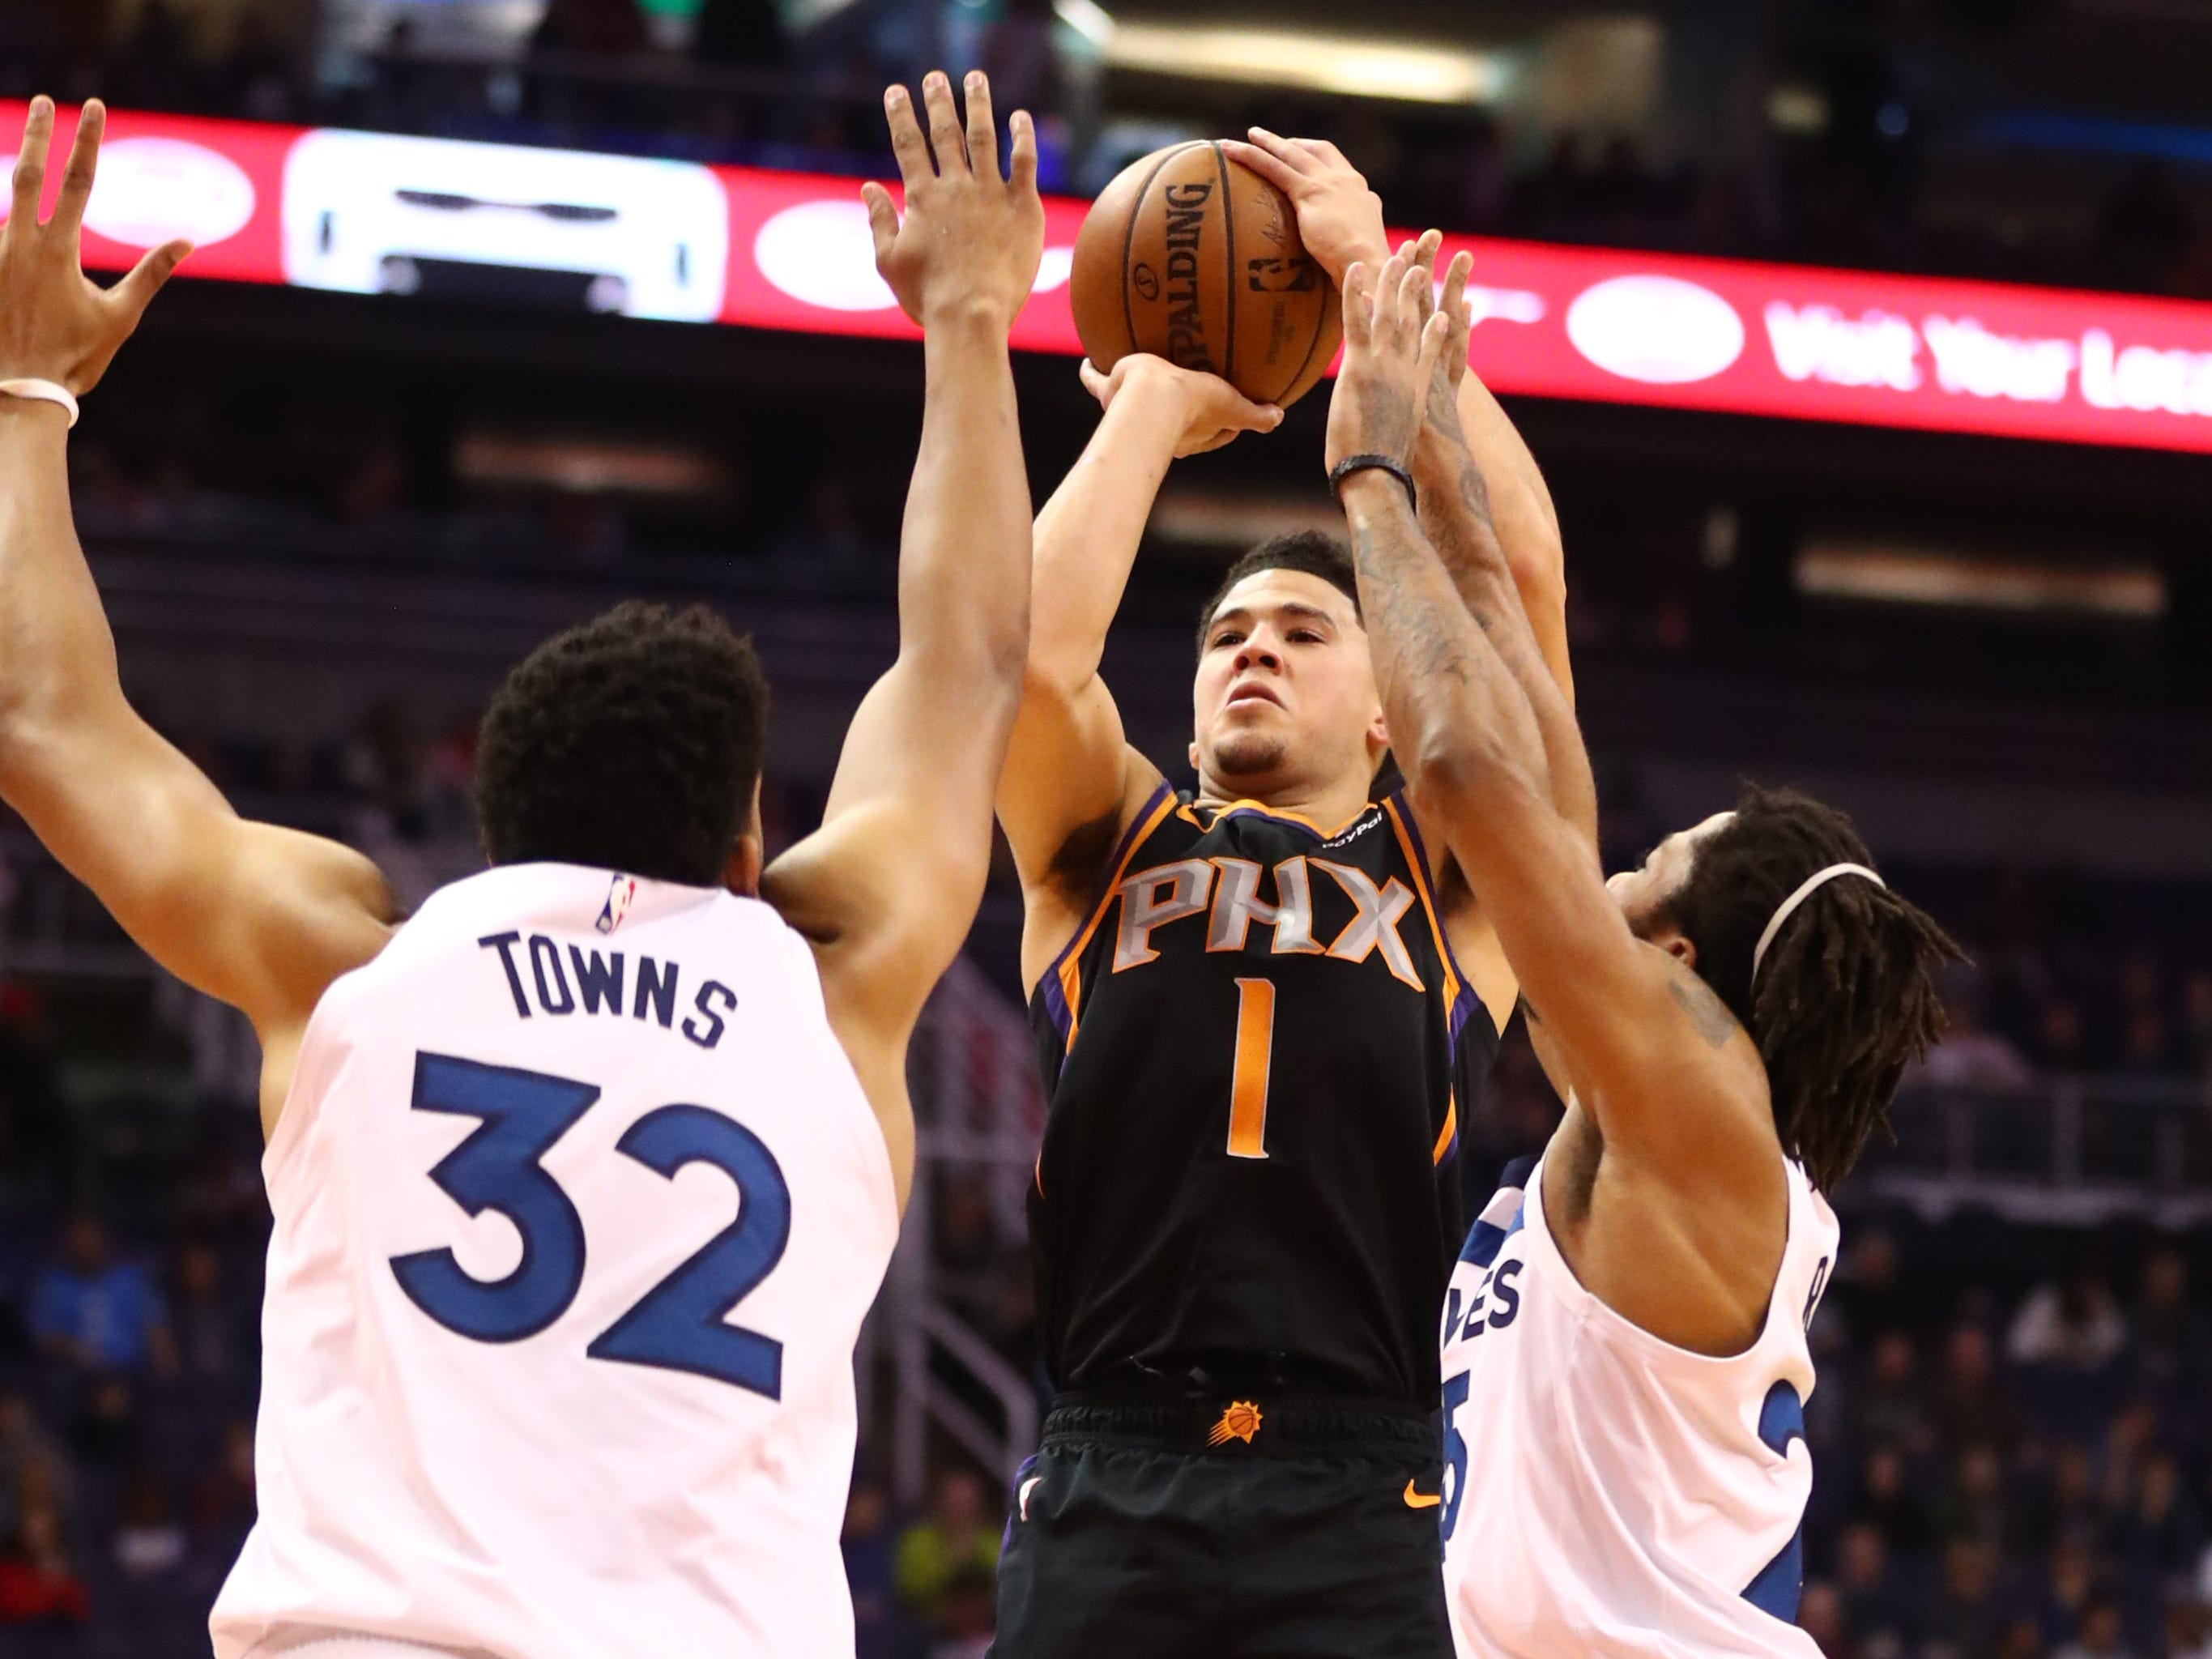 Dec 15, 2018; Phoenix, AZ, USA; Phoenix Suns guard Devin Booker (1) shoots the ball against Minnesota Timberwolves center Karl-Anthony Towns at Talking Stick Resort Arena. Mandatory Credit: Mark J. Rebilas-USA TODAY Sports